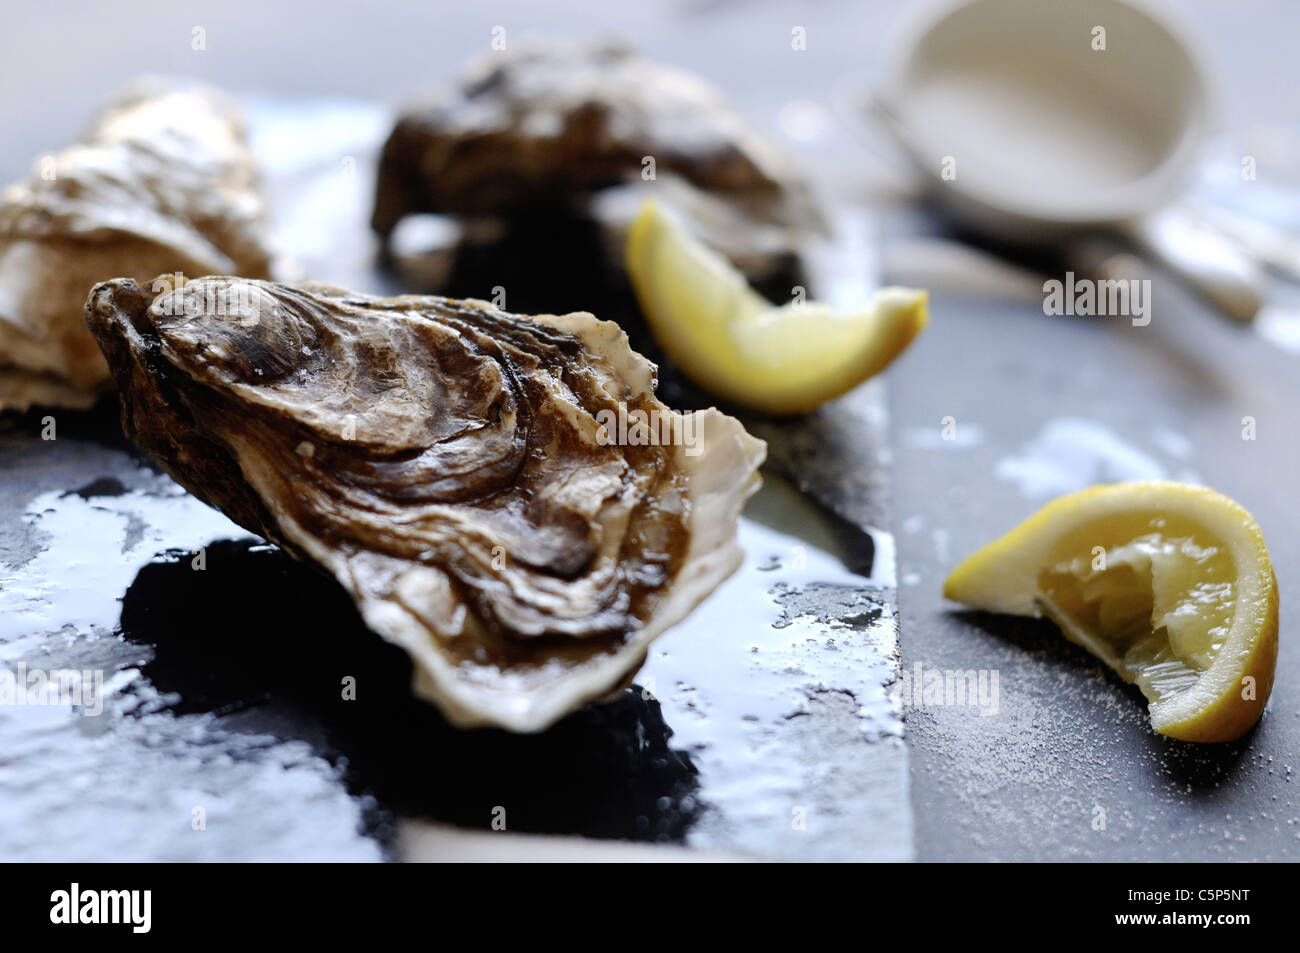 Oysters with lemon and salt - Stock Image